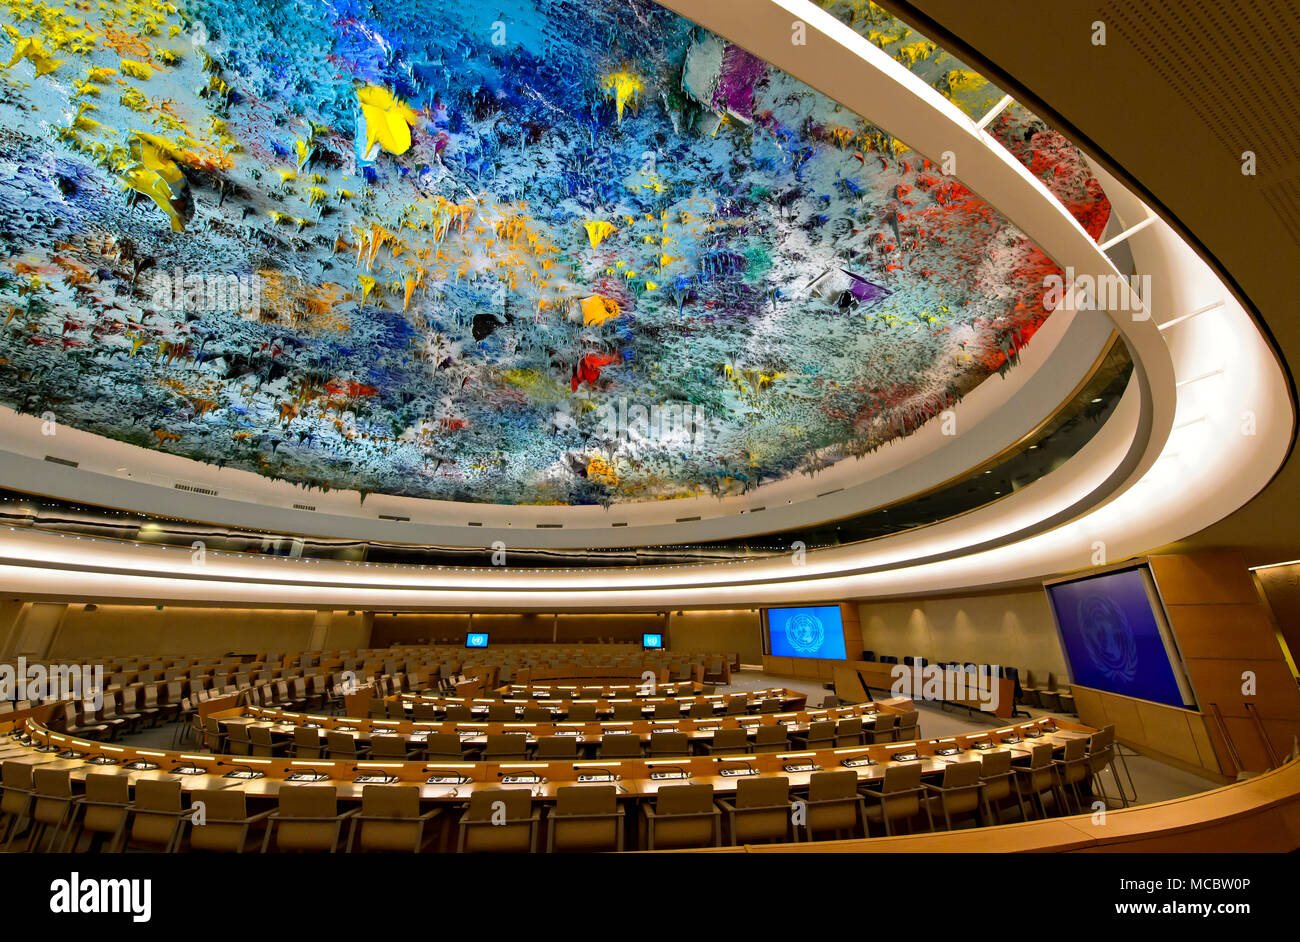 Human Rights and Alliance of Civilization Chamber with ceiling sculpture by Miquel Barceló, Palais des Nations, United Nations, Geneva, Switzerland - Stock Image